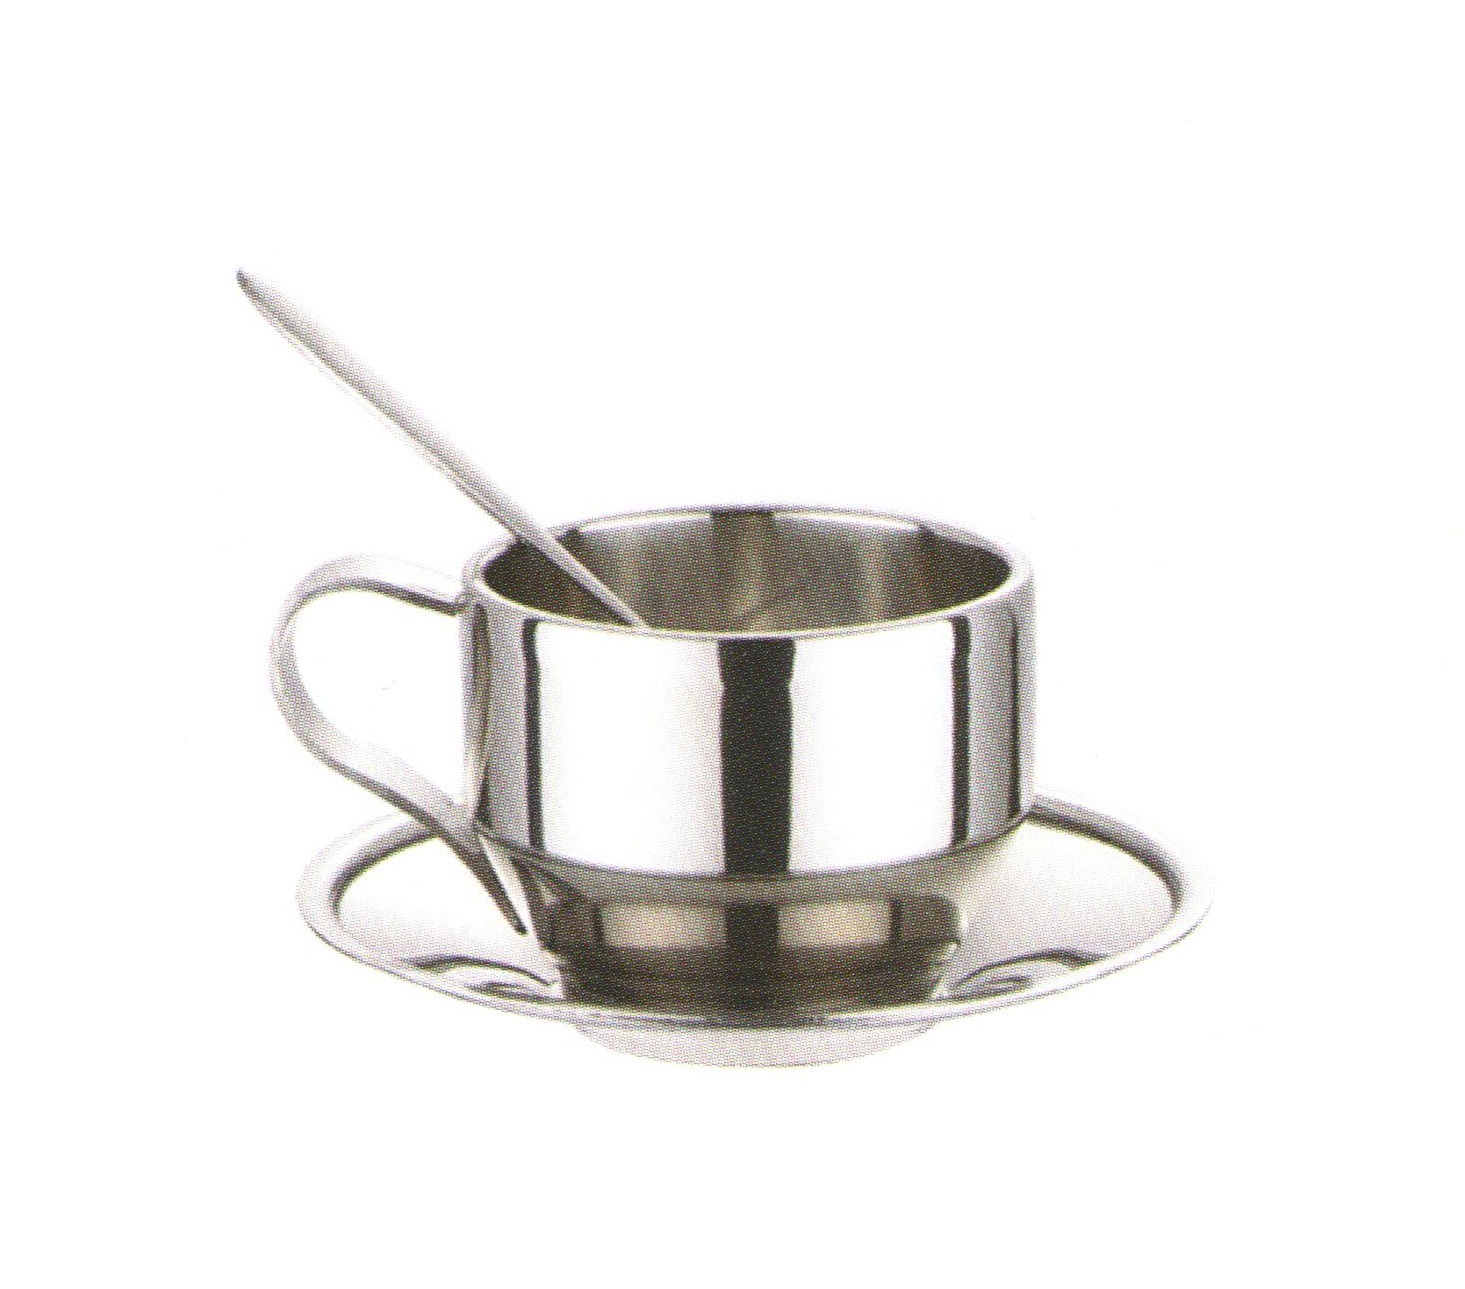 Stainless Steel Coffee Cups-No.Scc021-Dinnerware